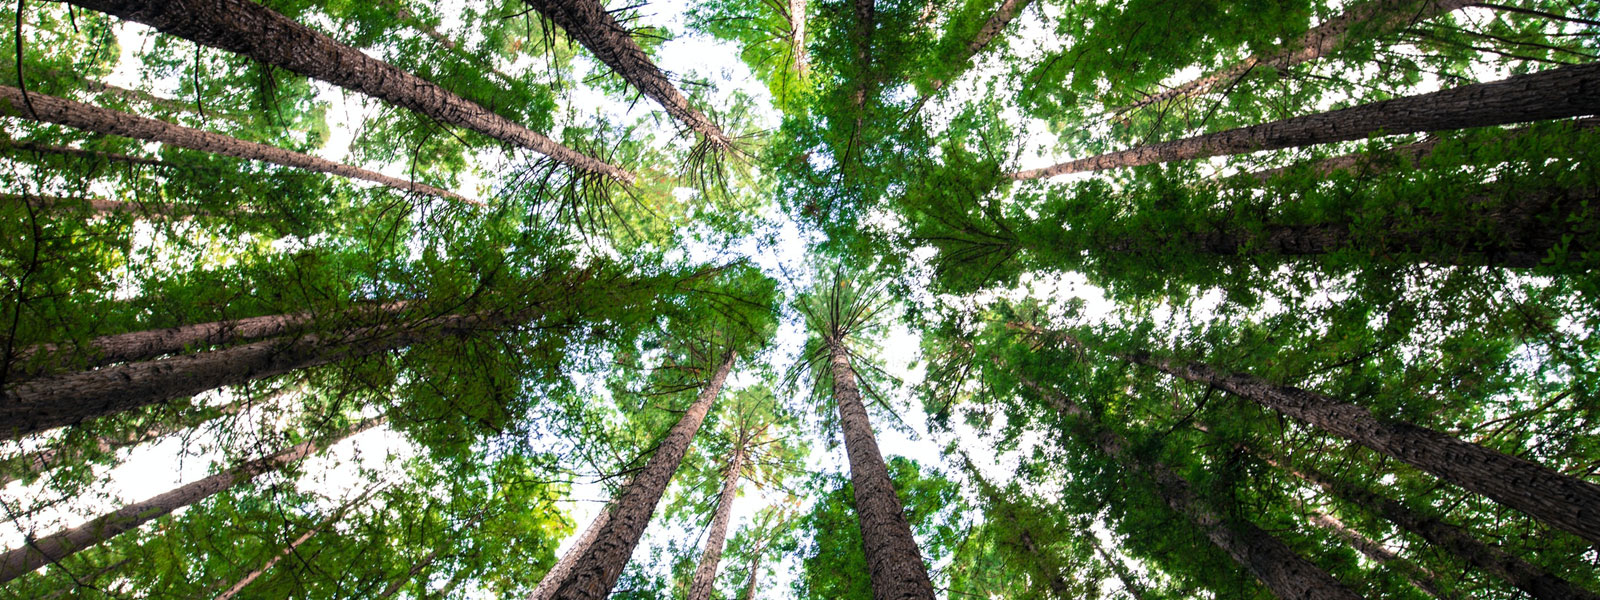 Photo of a forest pointing upwards towards the sky as light breaks through the leaves.